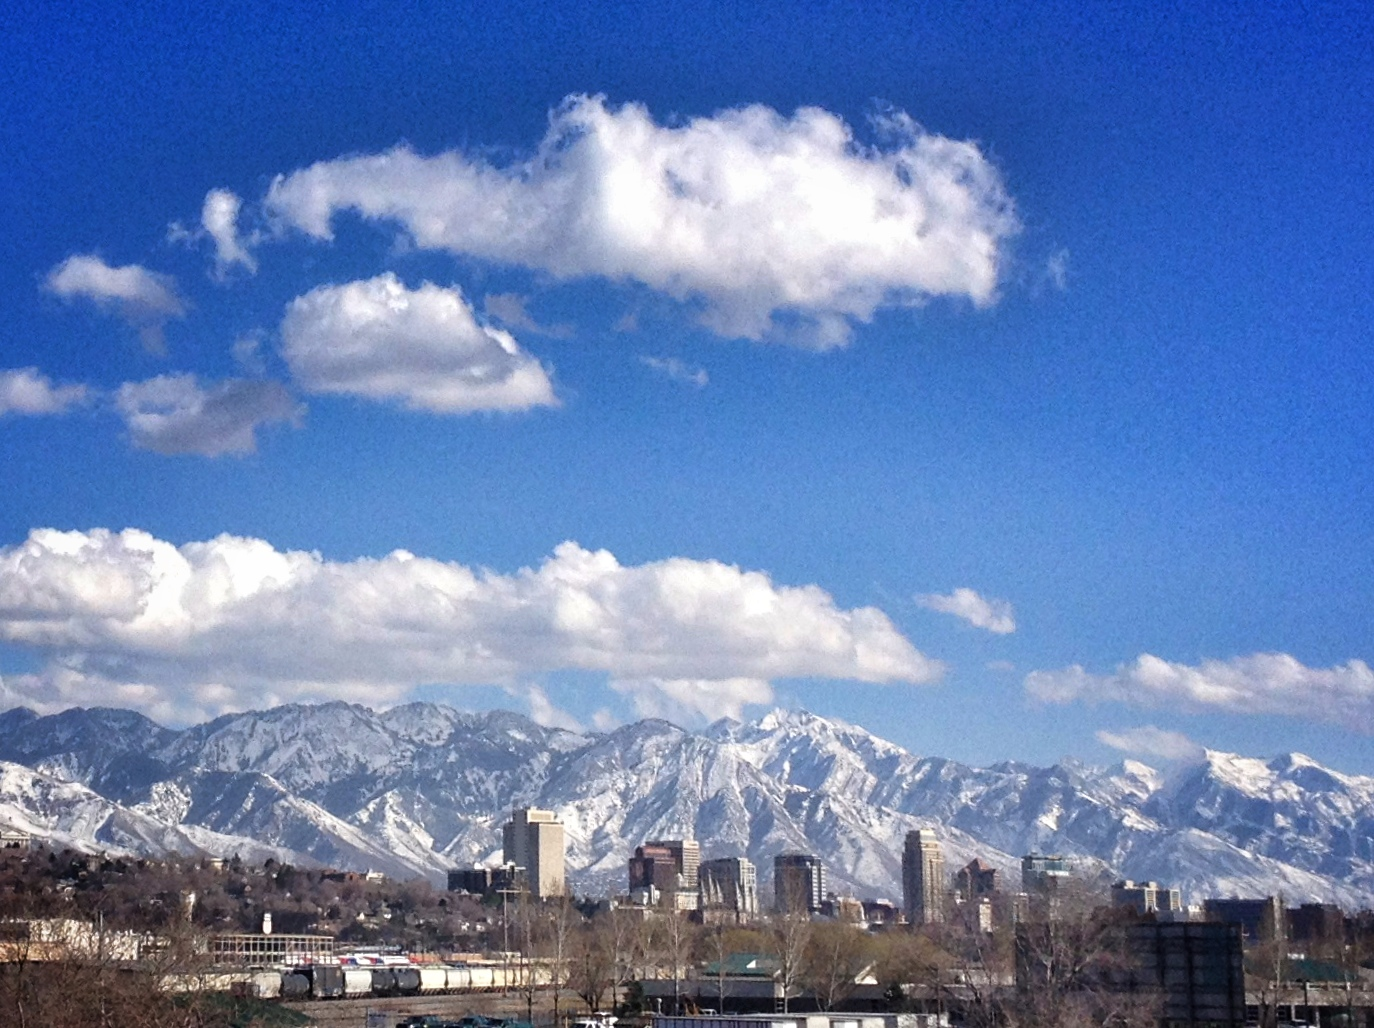 The Salt Lake City skyline juxtaposed against the Wasatch Mountains. Home.